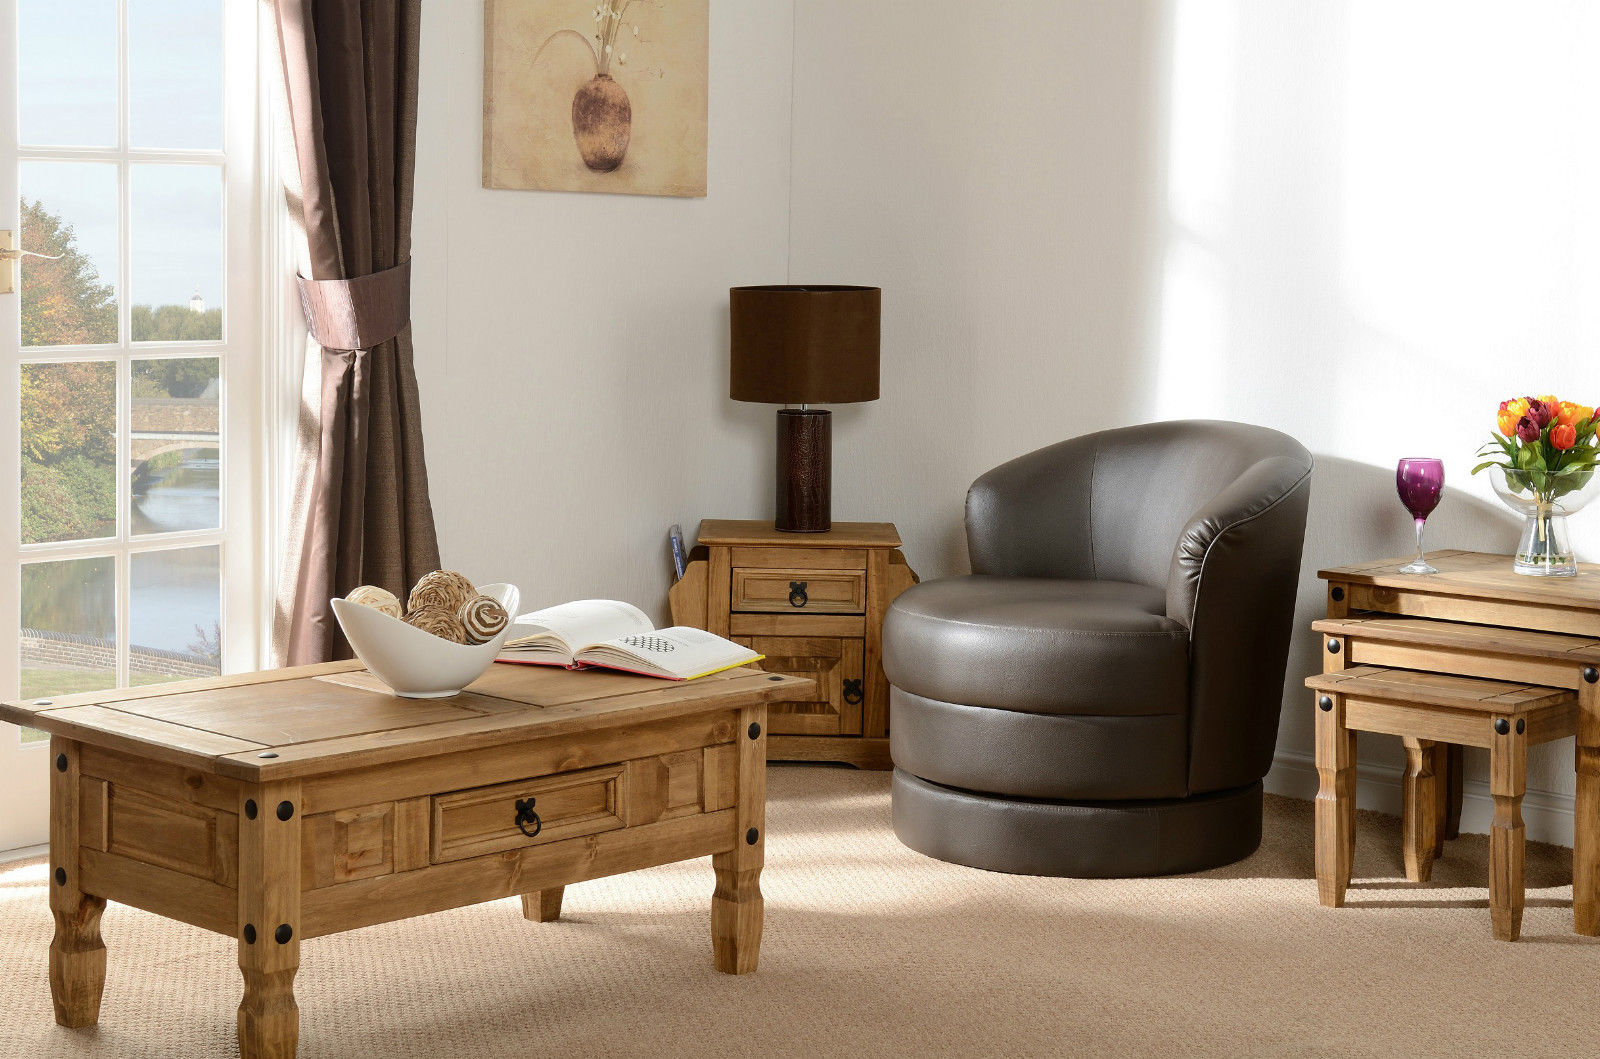 Mainly Pine Incredible With Corona,Pine Furniture | Best home